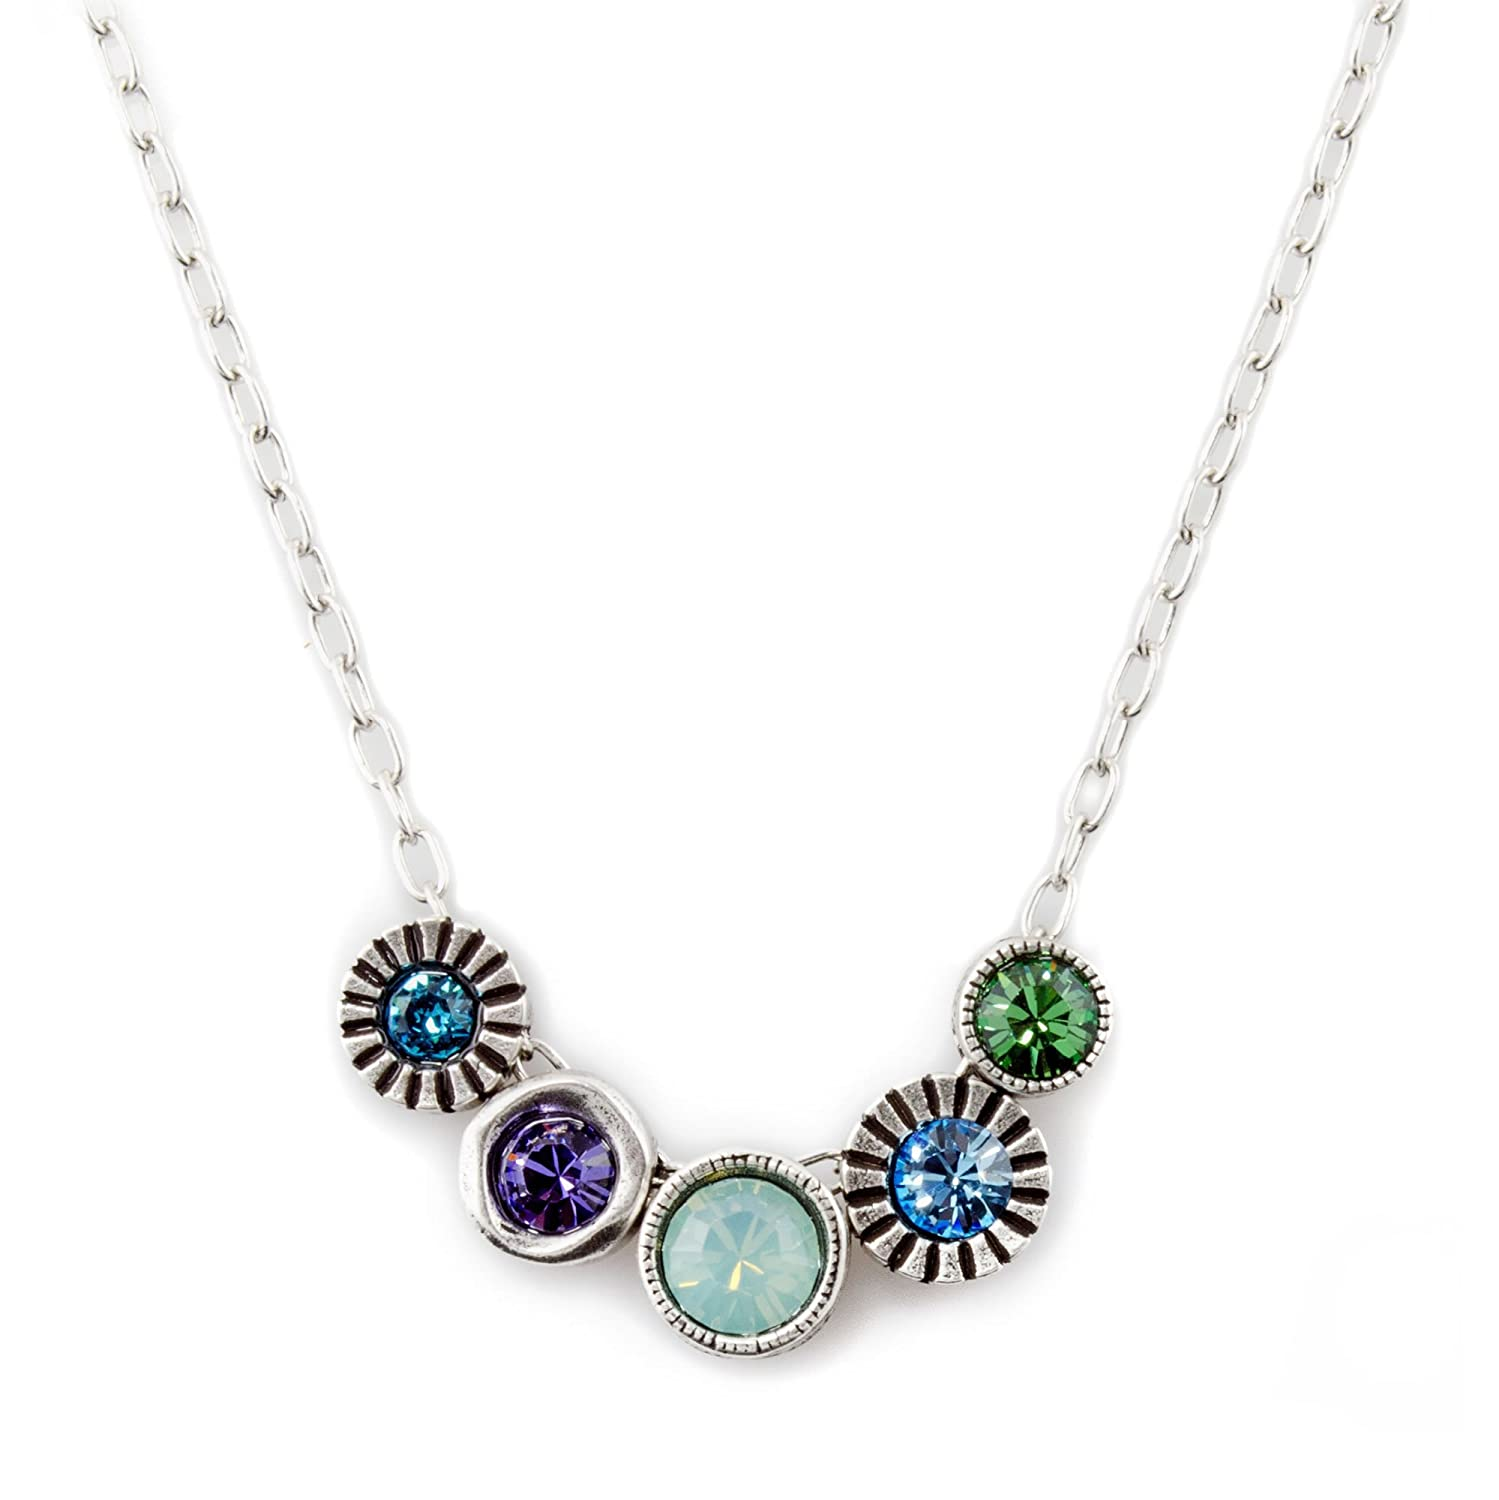 wholesale Patricia Locke Pennies from Heaven Necklace in Silver, Waterlily supplies